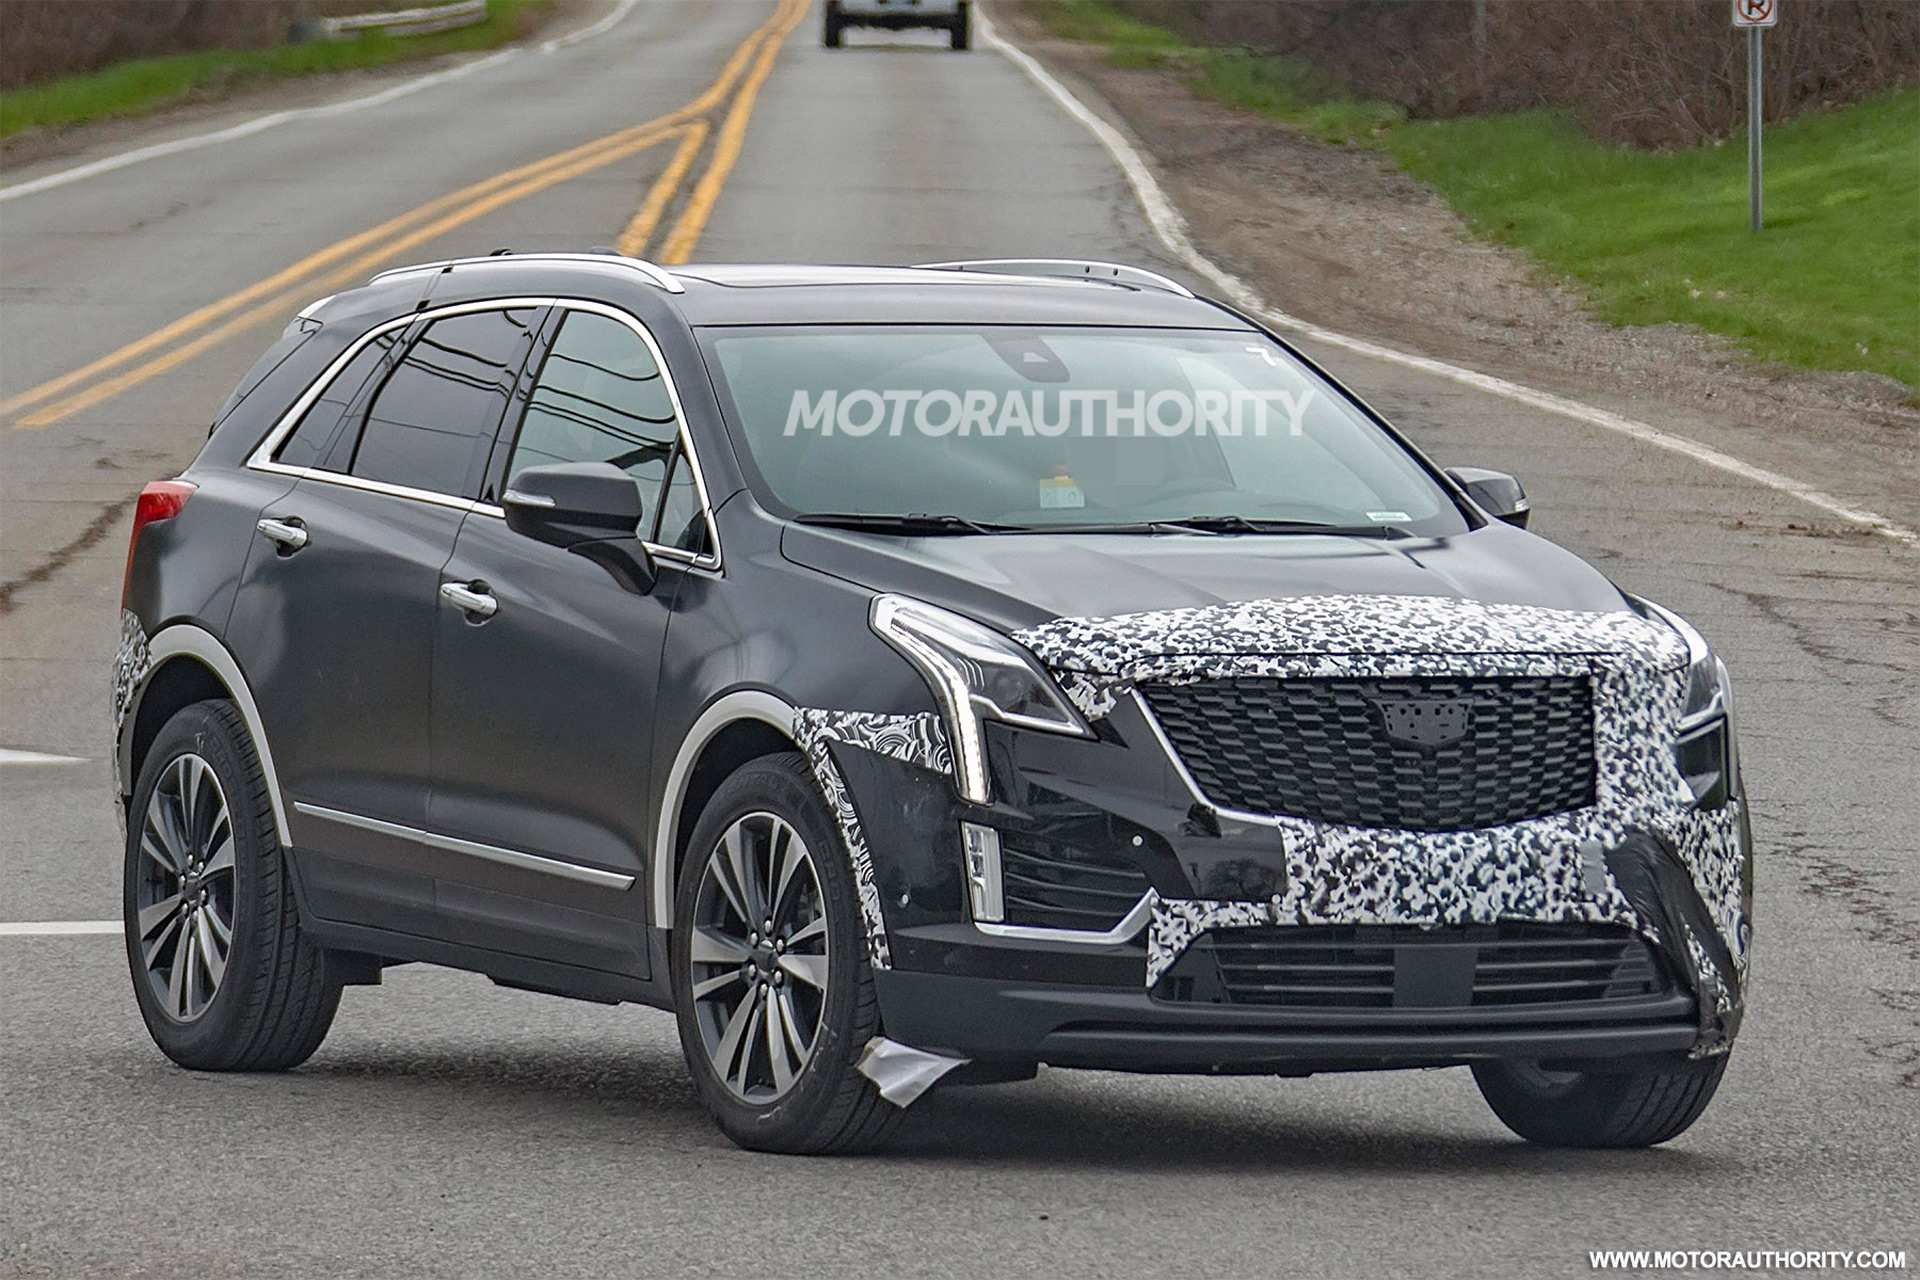 52 Great 2020 Cadillac Xt5 Review Release by 2020 Cadillac Xt5 Review